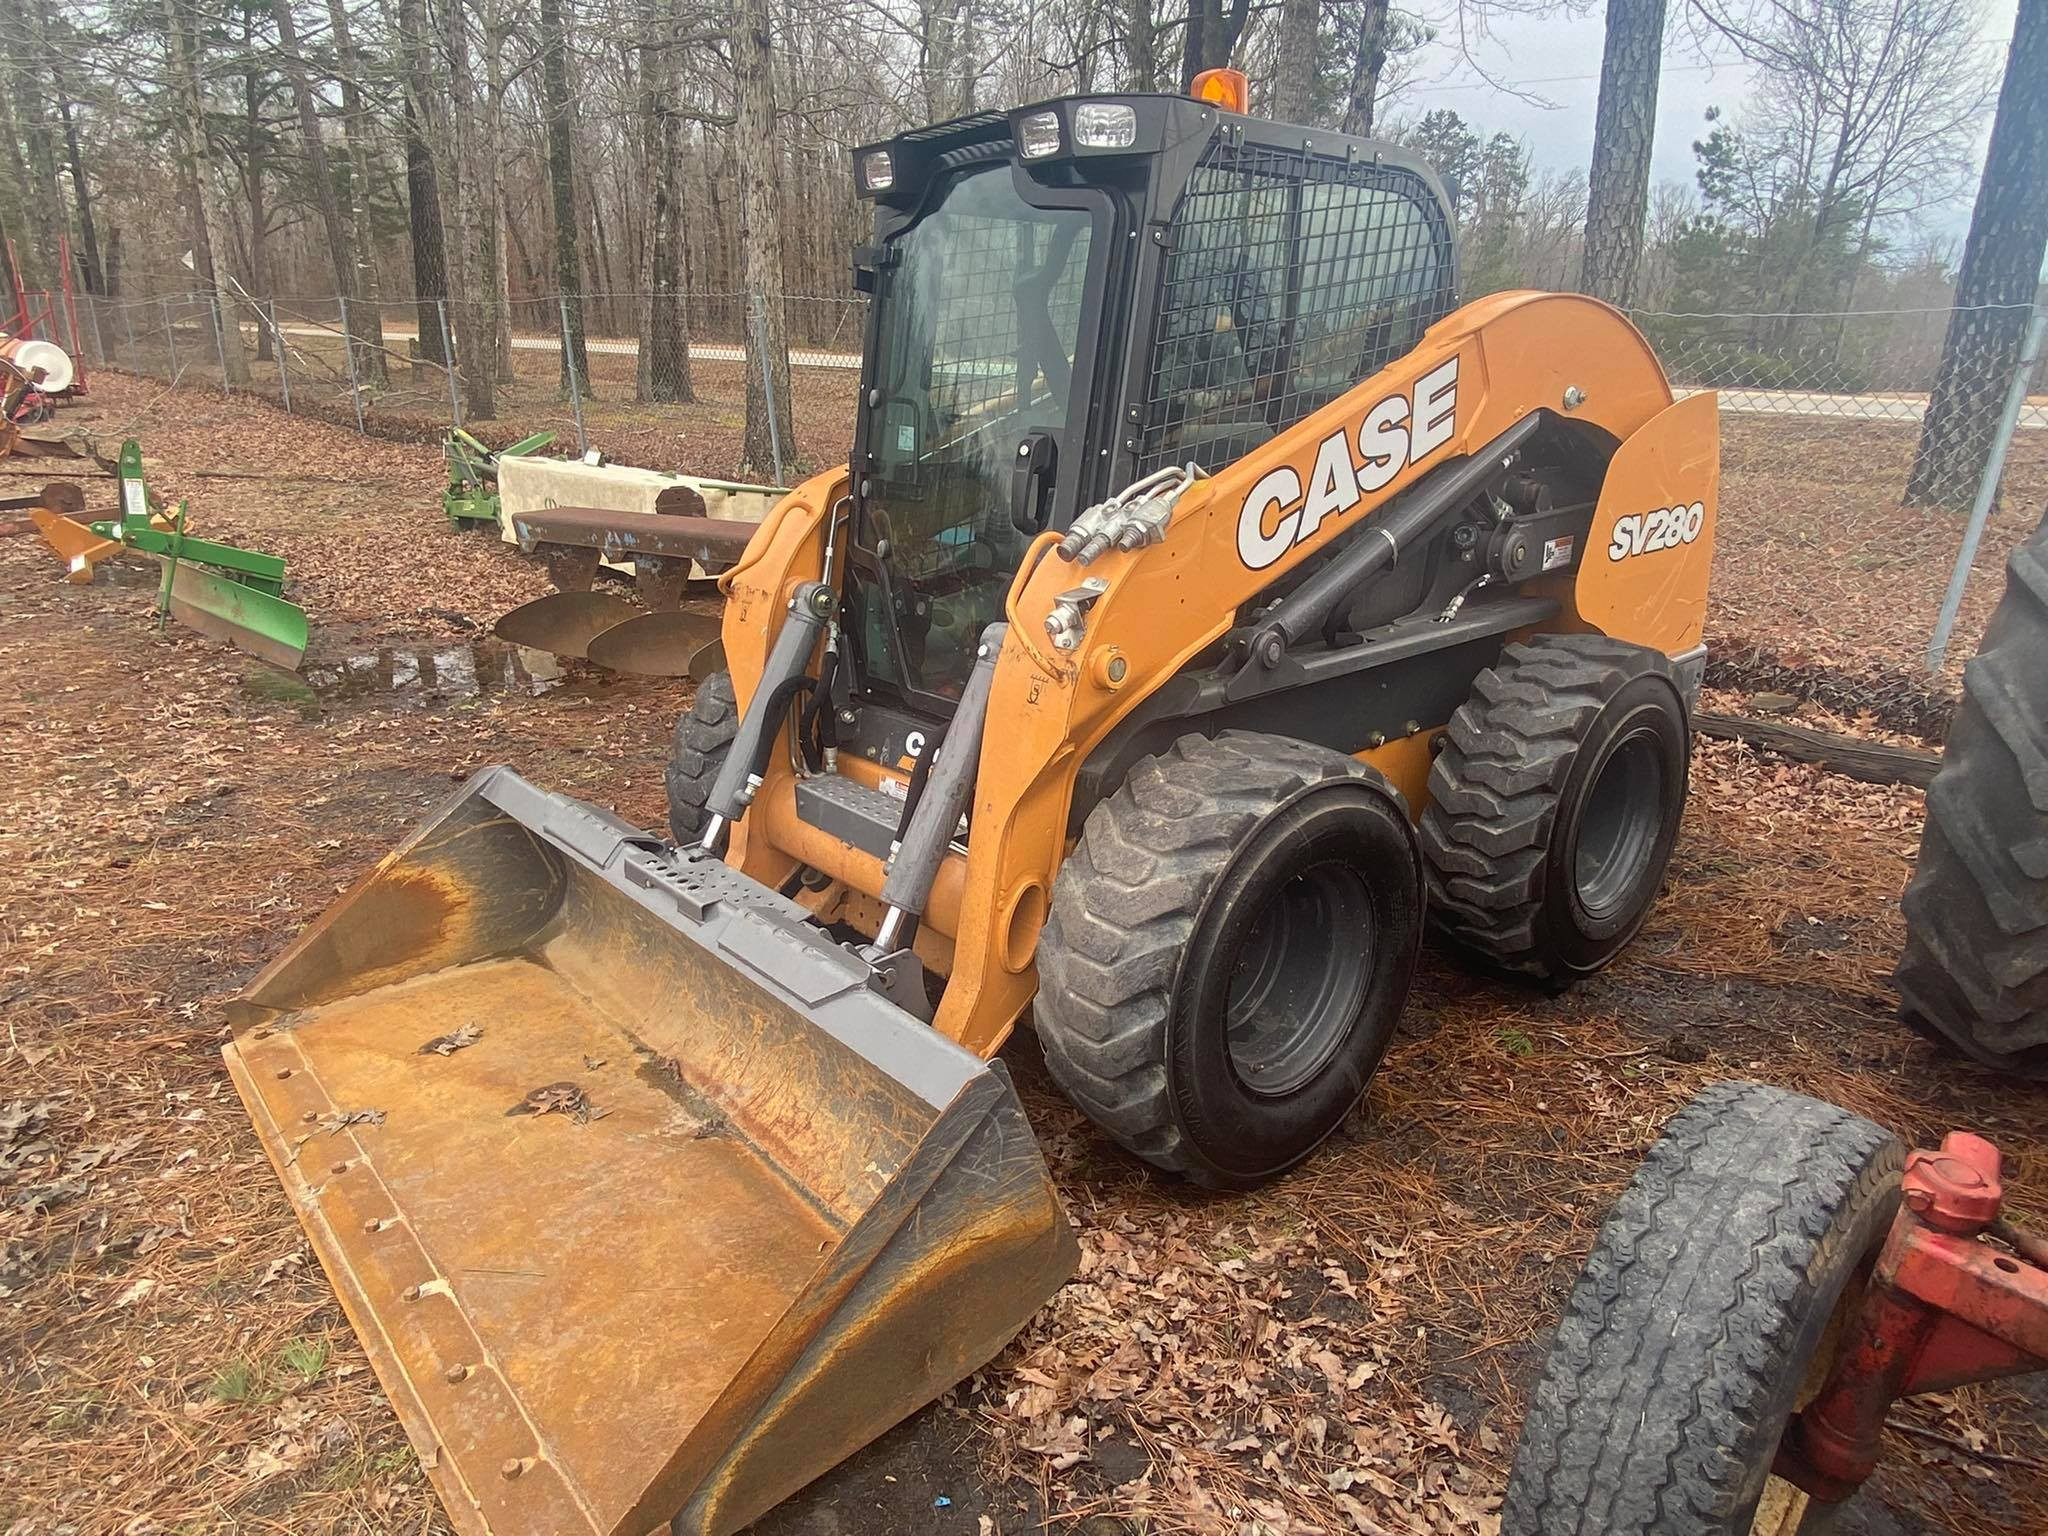 Used, 2021, Case Construction, SV280, Skid Steers